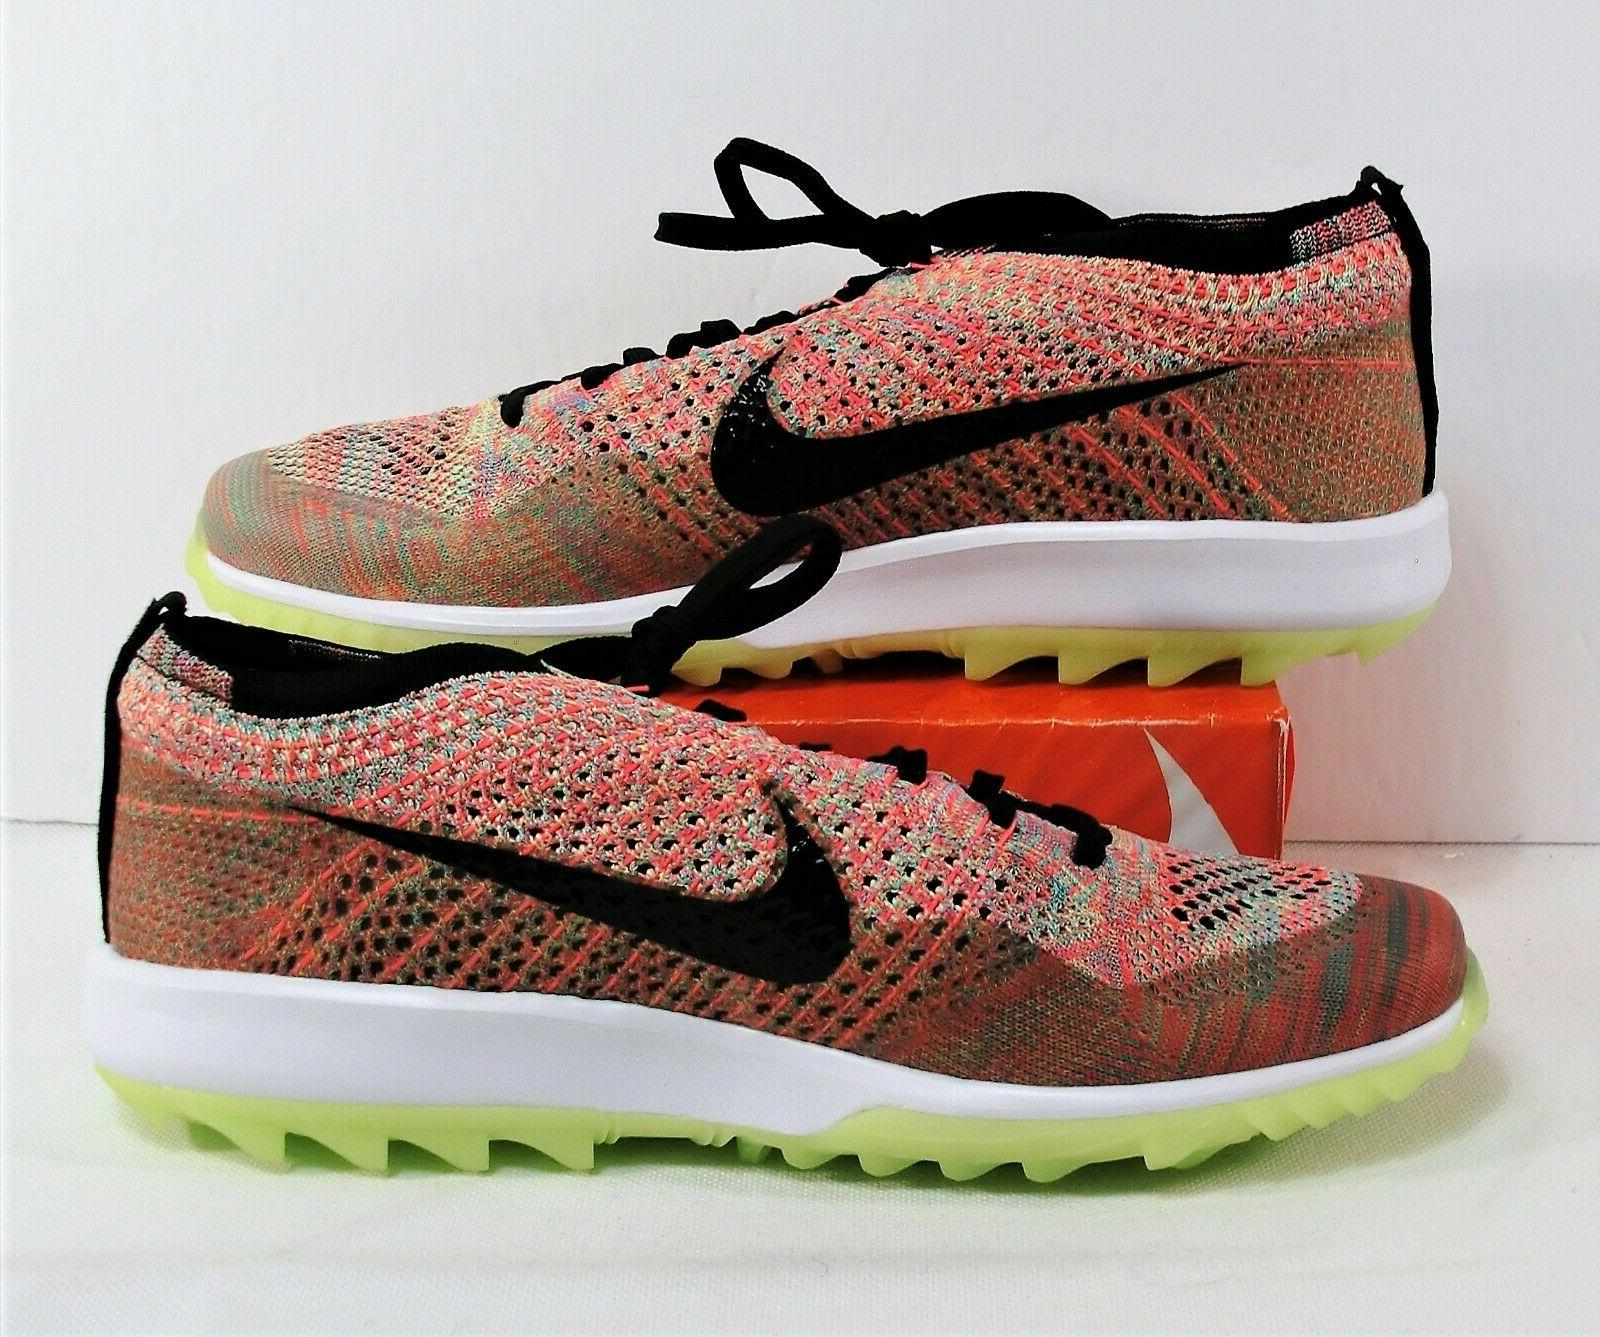 NIke Flyknit Racer Spikeless Multi Color Golf Shoes Sz 10 909756